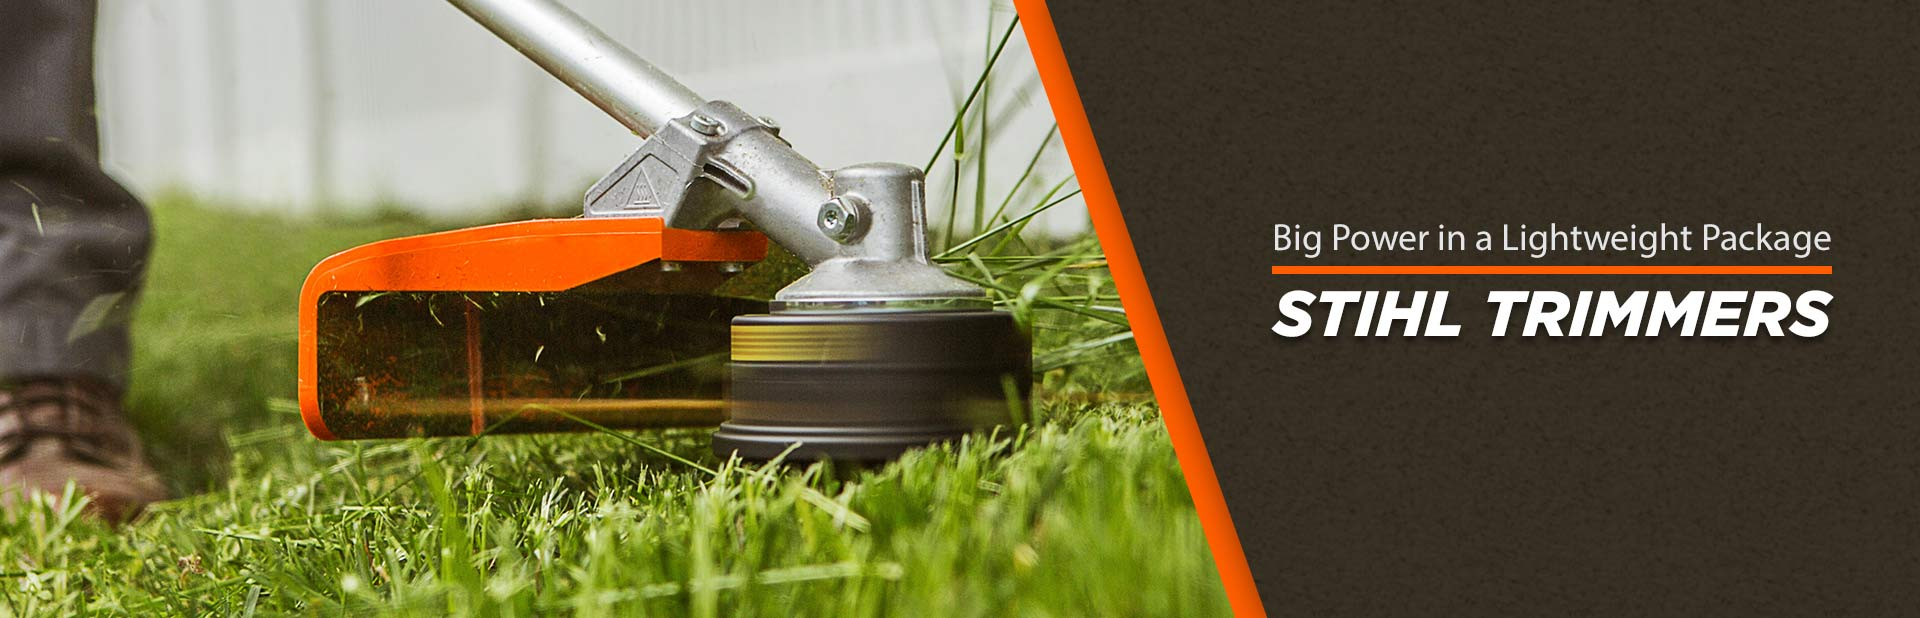 STIHL Trimmers: Click here to view the models.